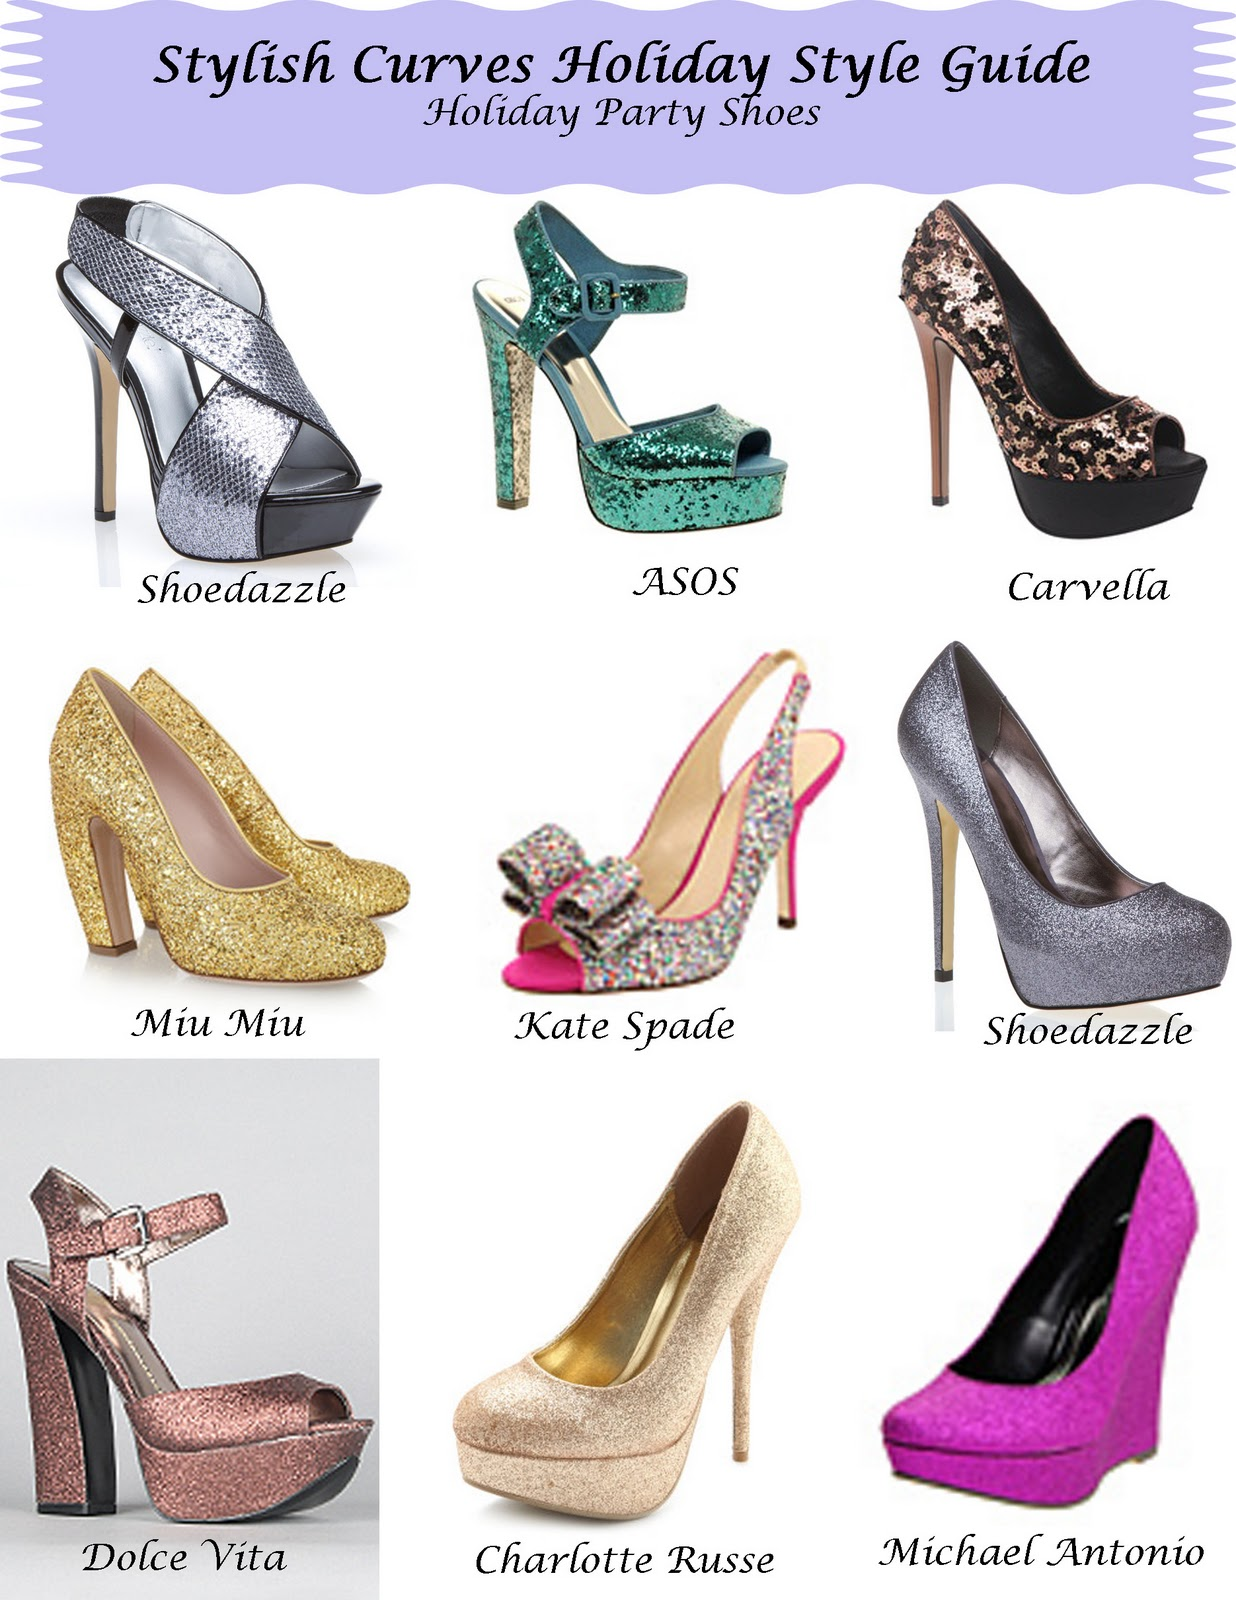 STYLISH CURVES HOLIDAY STYLE GUIDE HOLIDAY PARTY HEELS